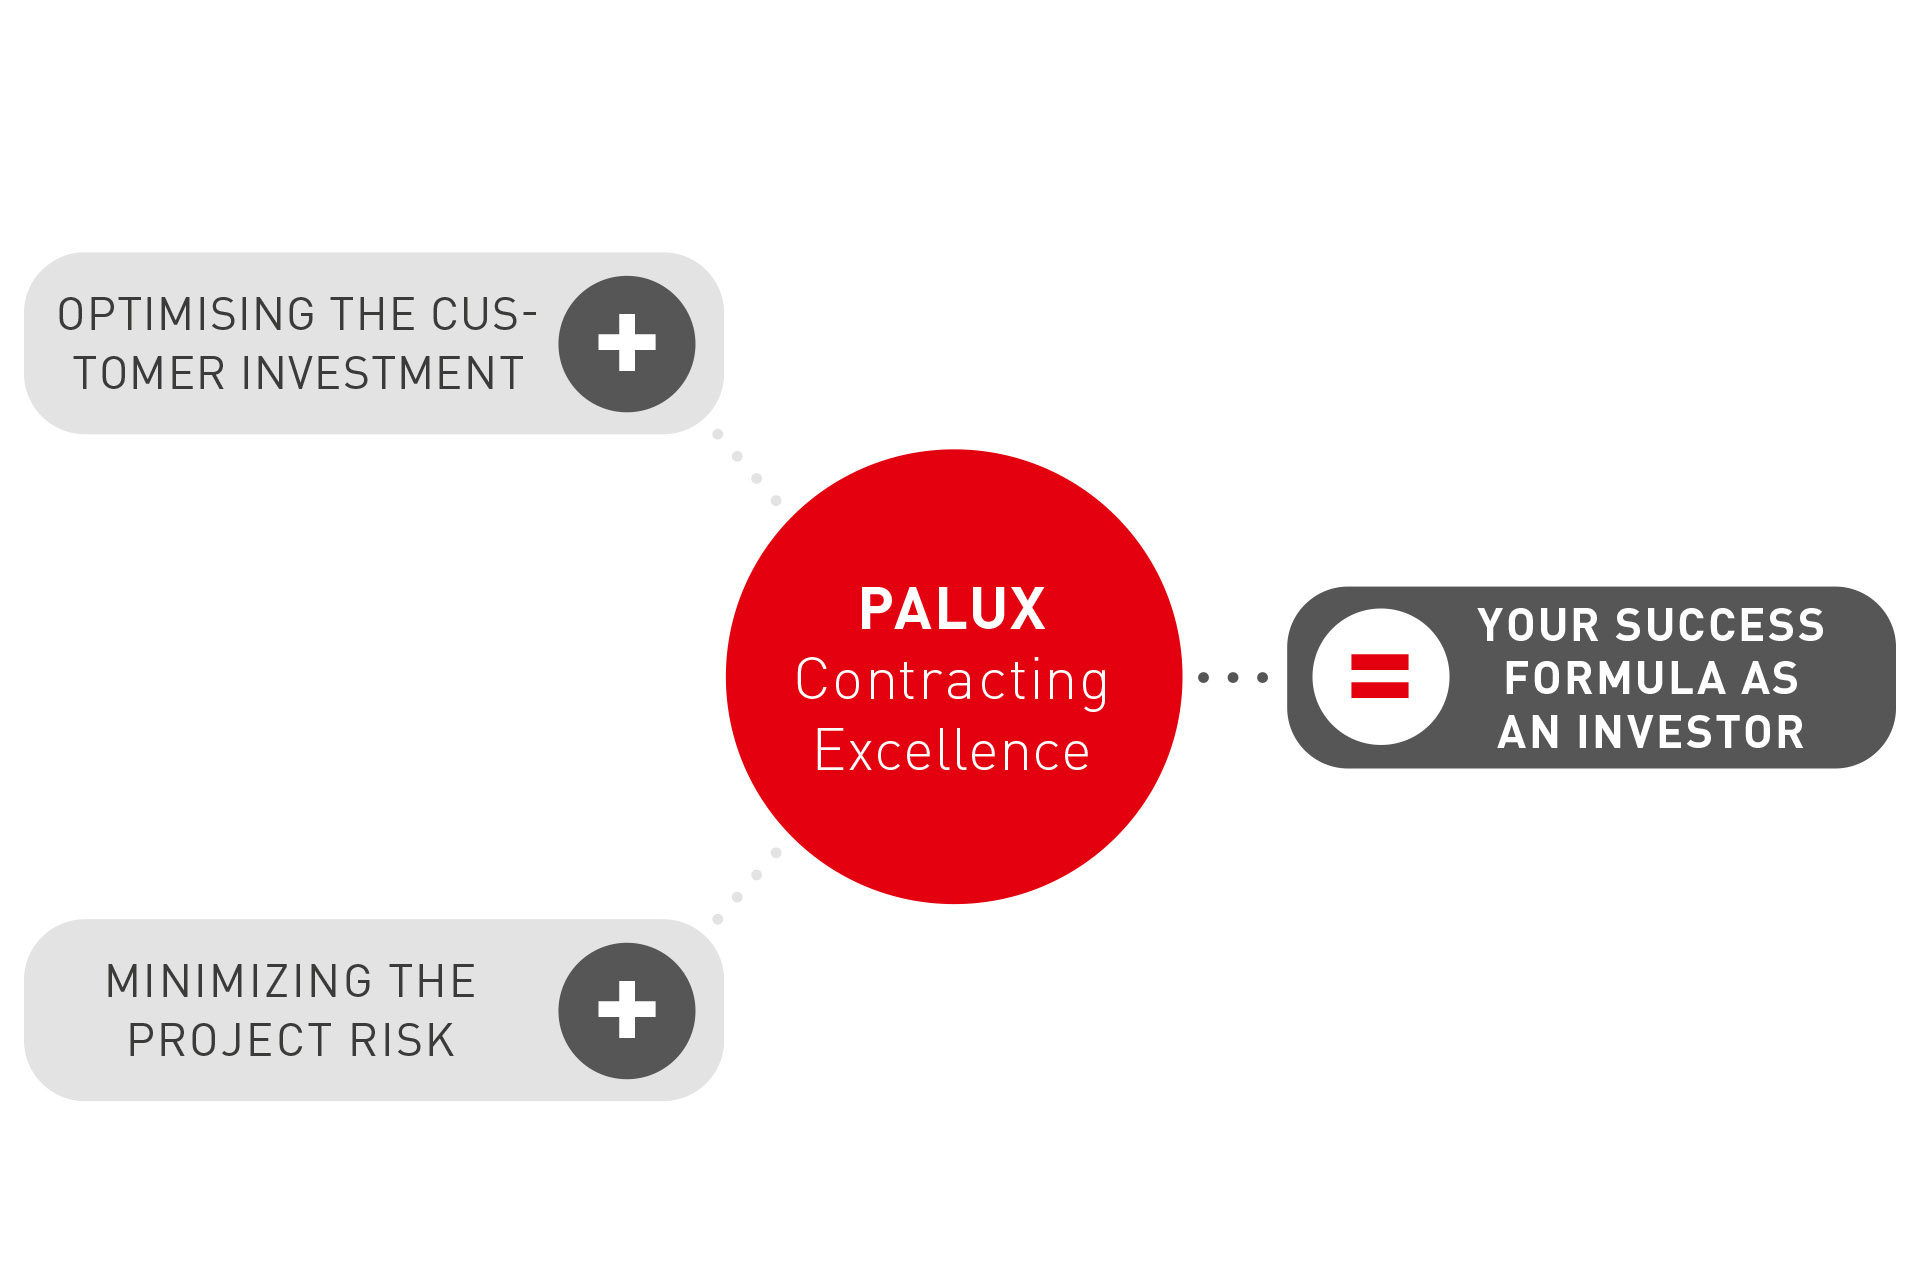 palux-contracting-excellence-success-formula-en